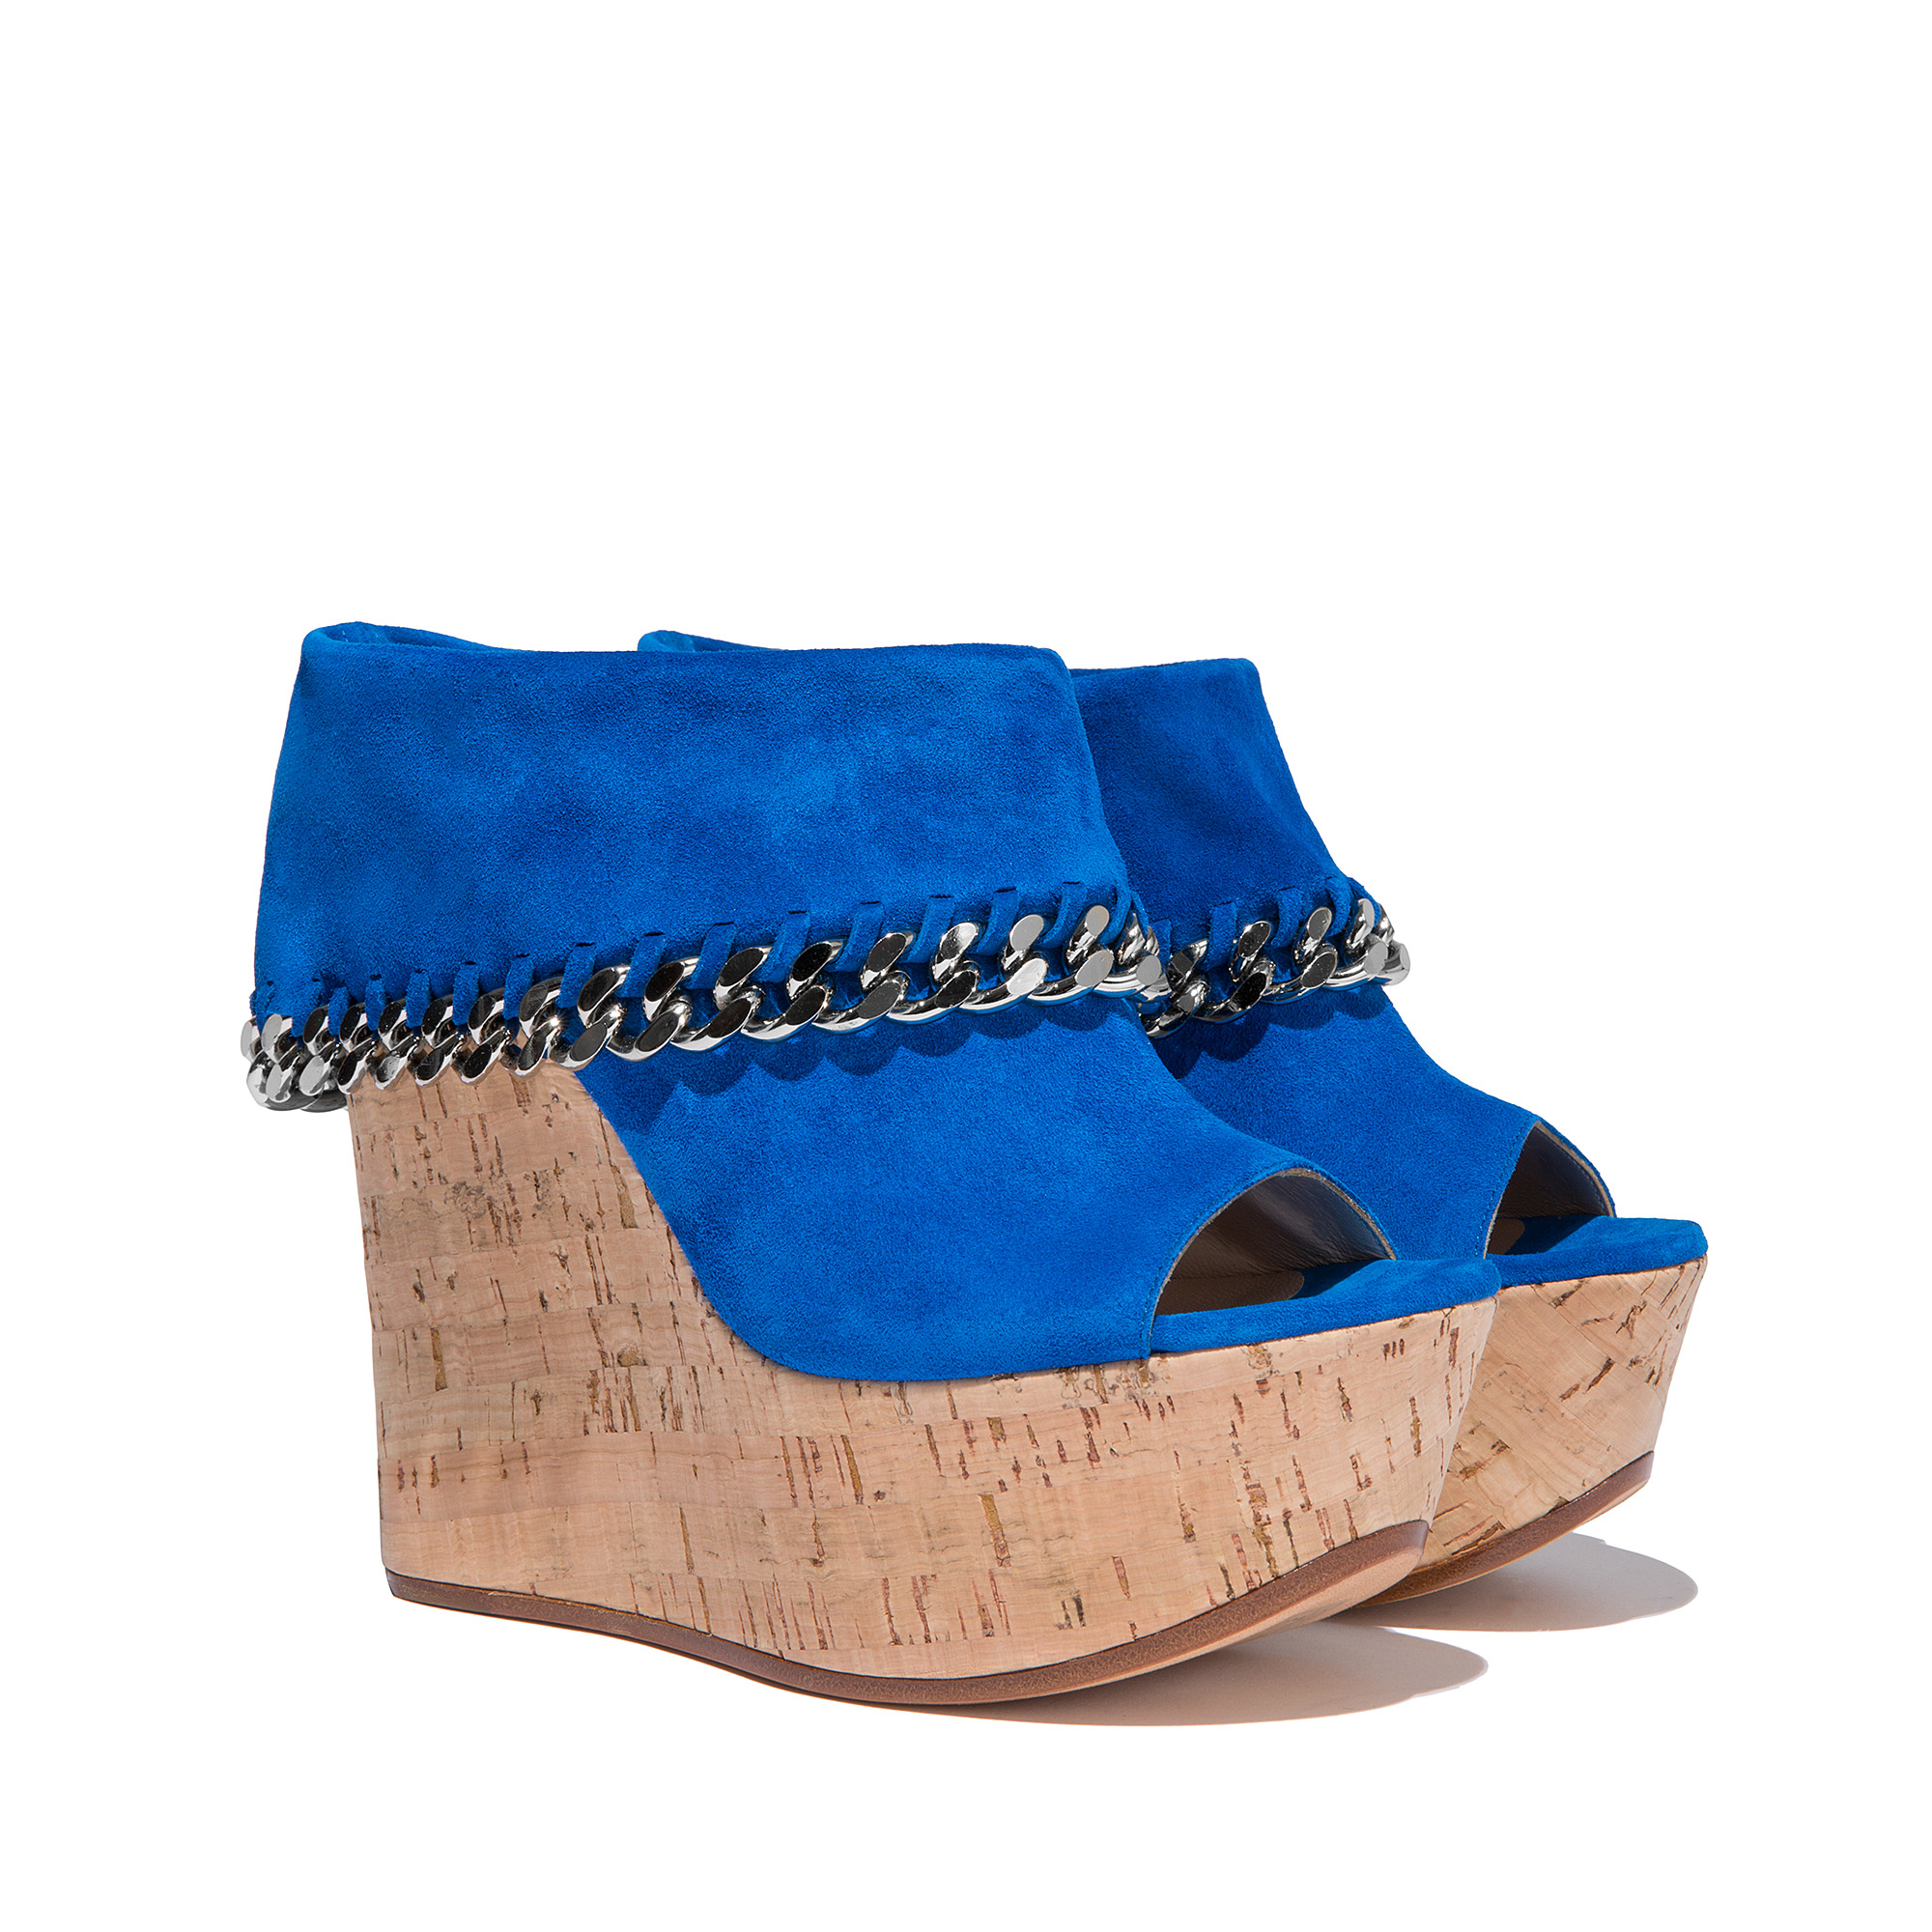 43865ade31e4 Lyst - Casadei Wedges in Blue